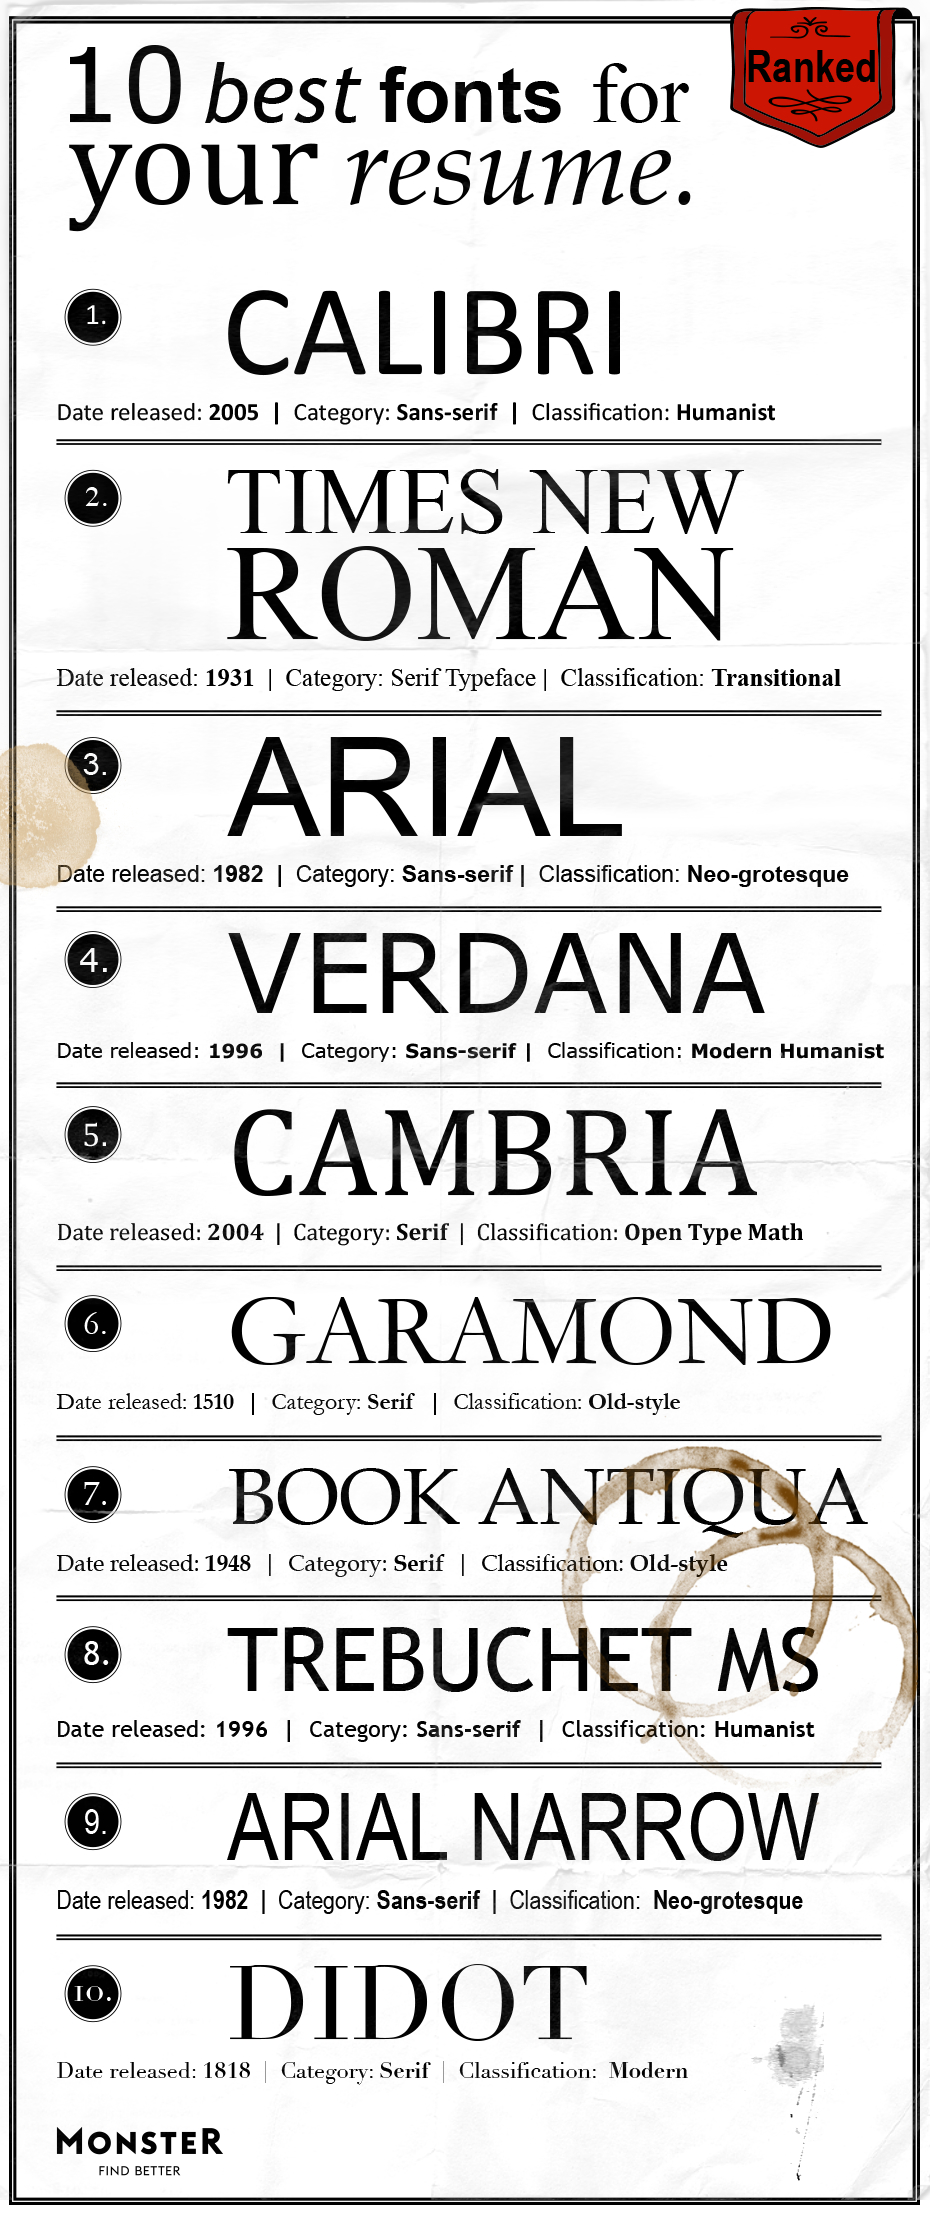 best font for resume monster suggestions fonts ranked flagger duties mckinsey agile Resume Resume Font Suggestions